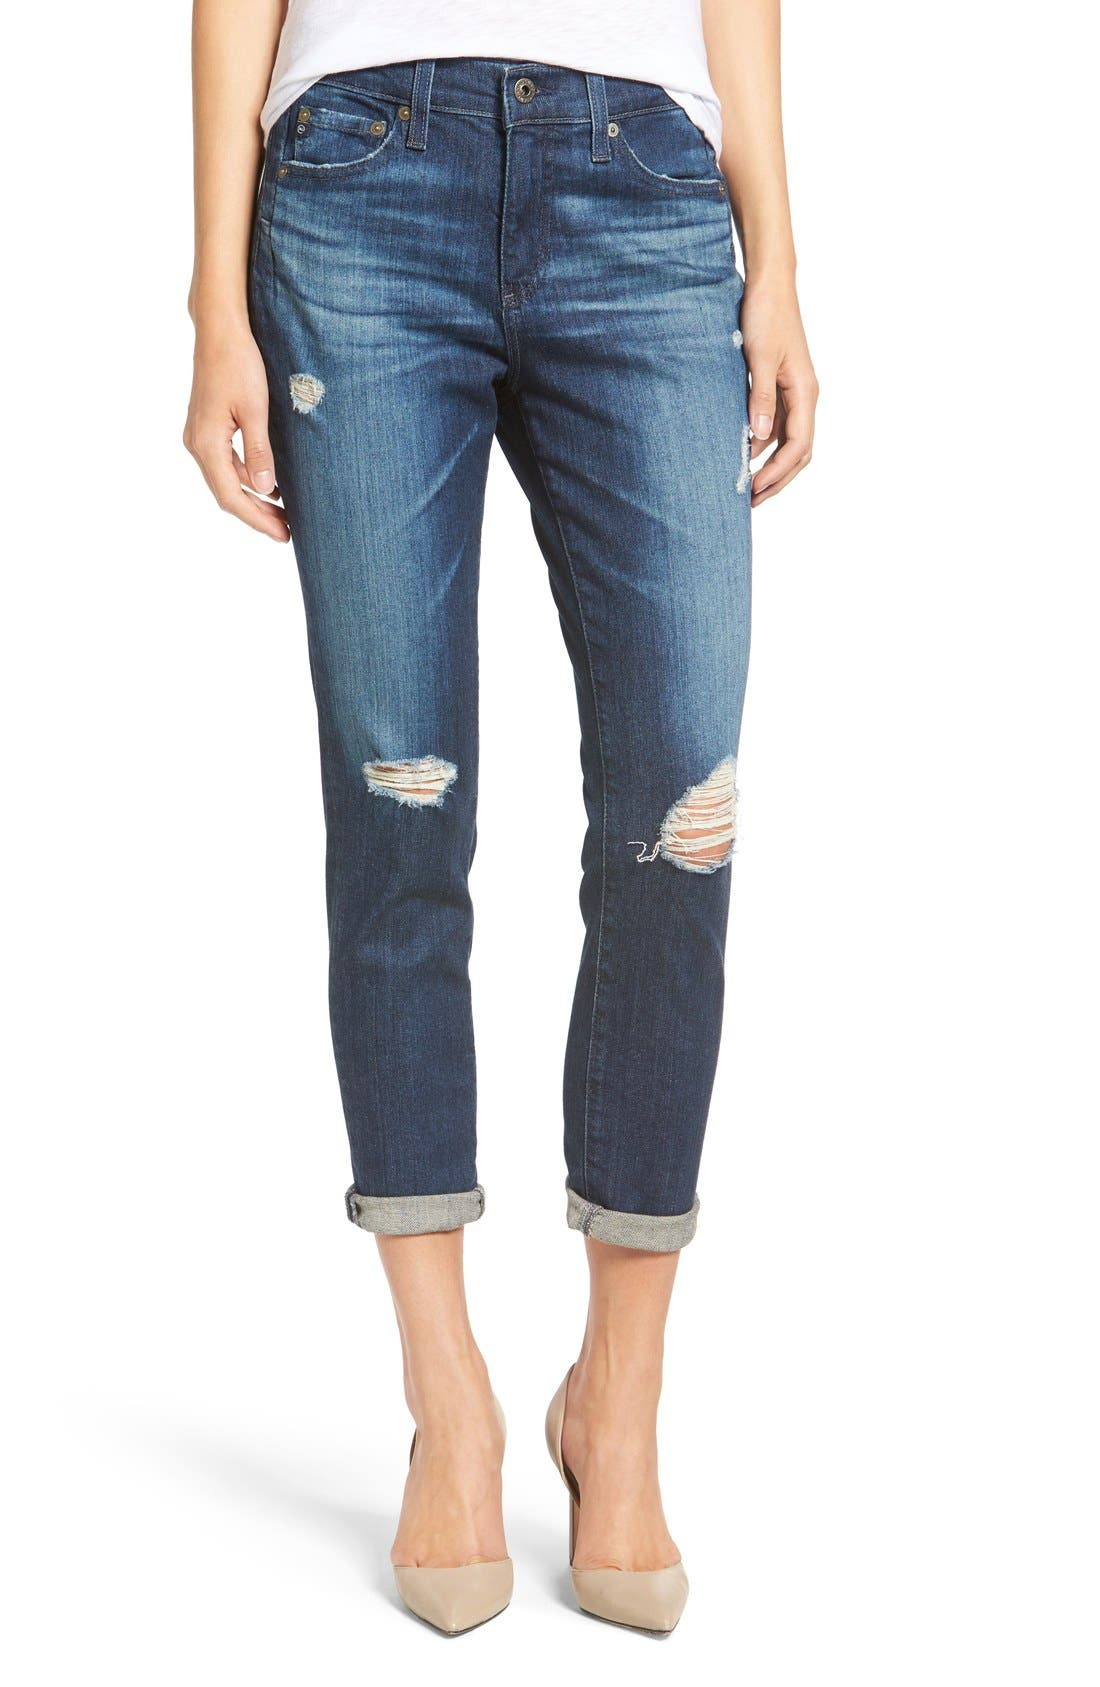 Alternate Image 1 Selected - AG 'The Beau' High Rise Slouchy Skinny Jeans (Winnow)